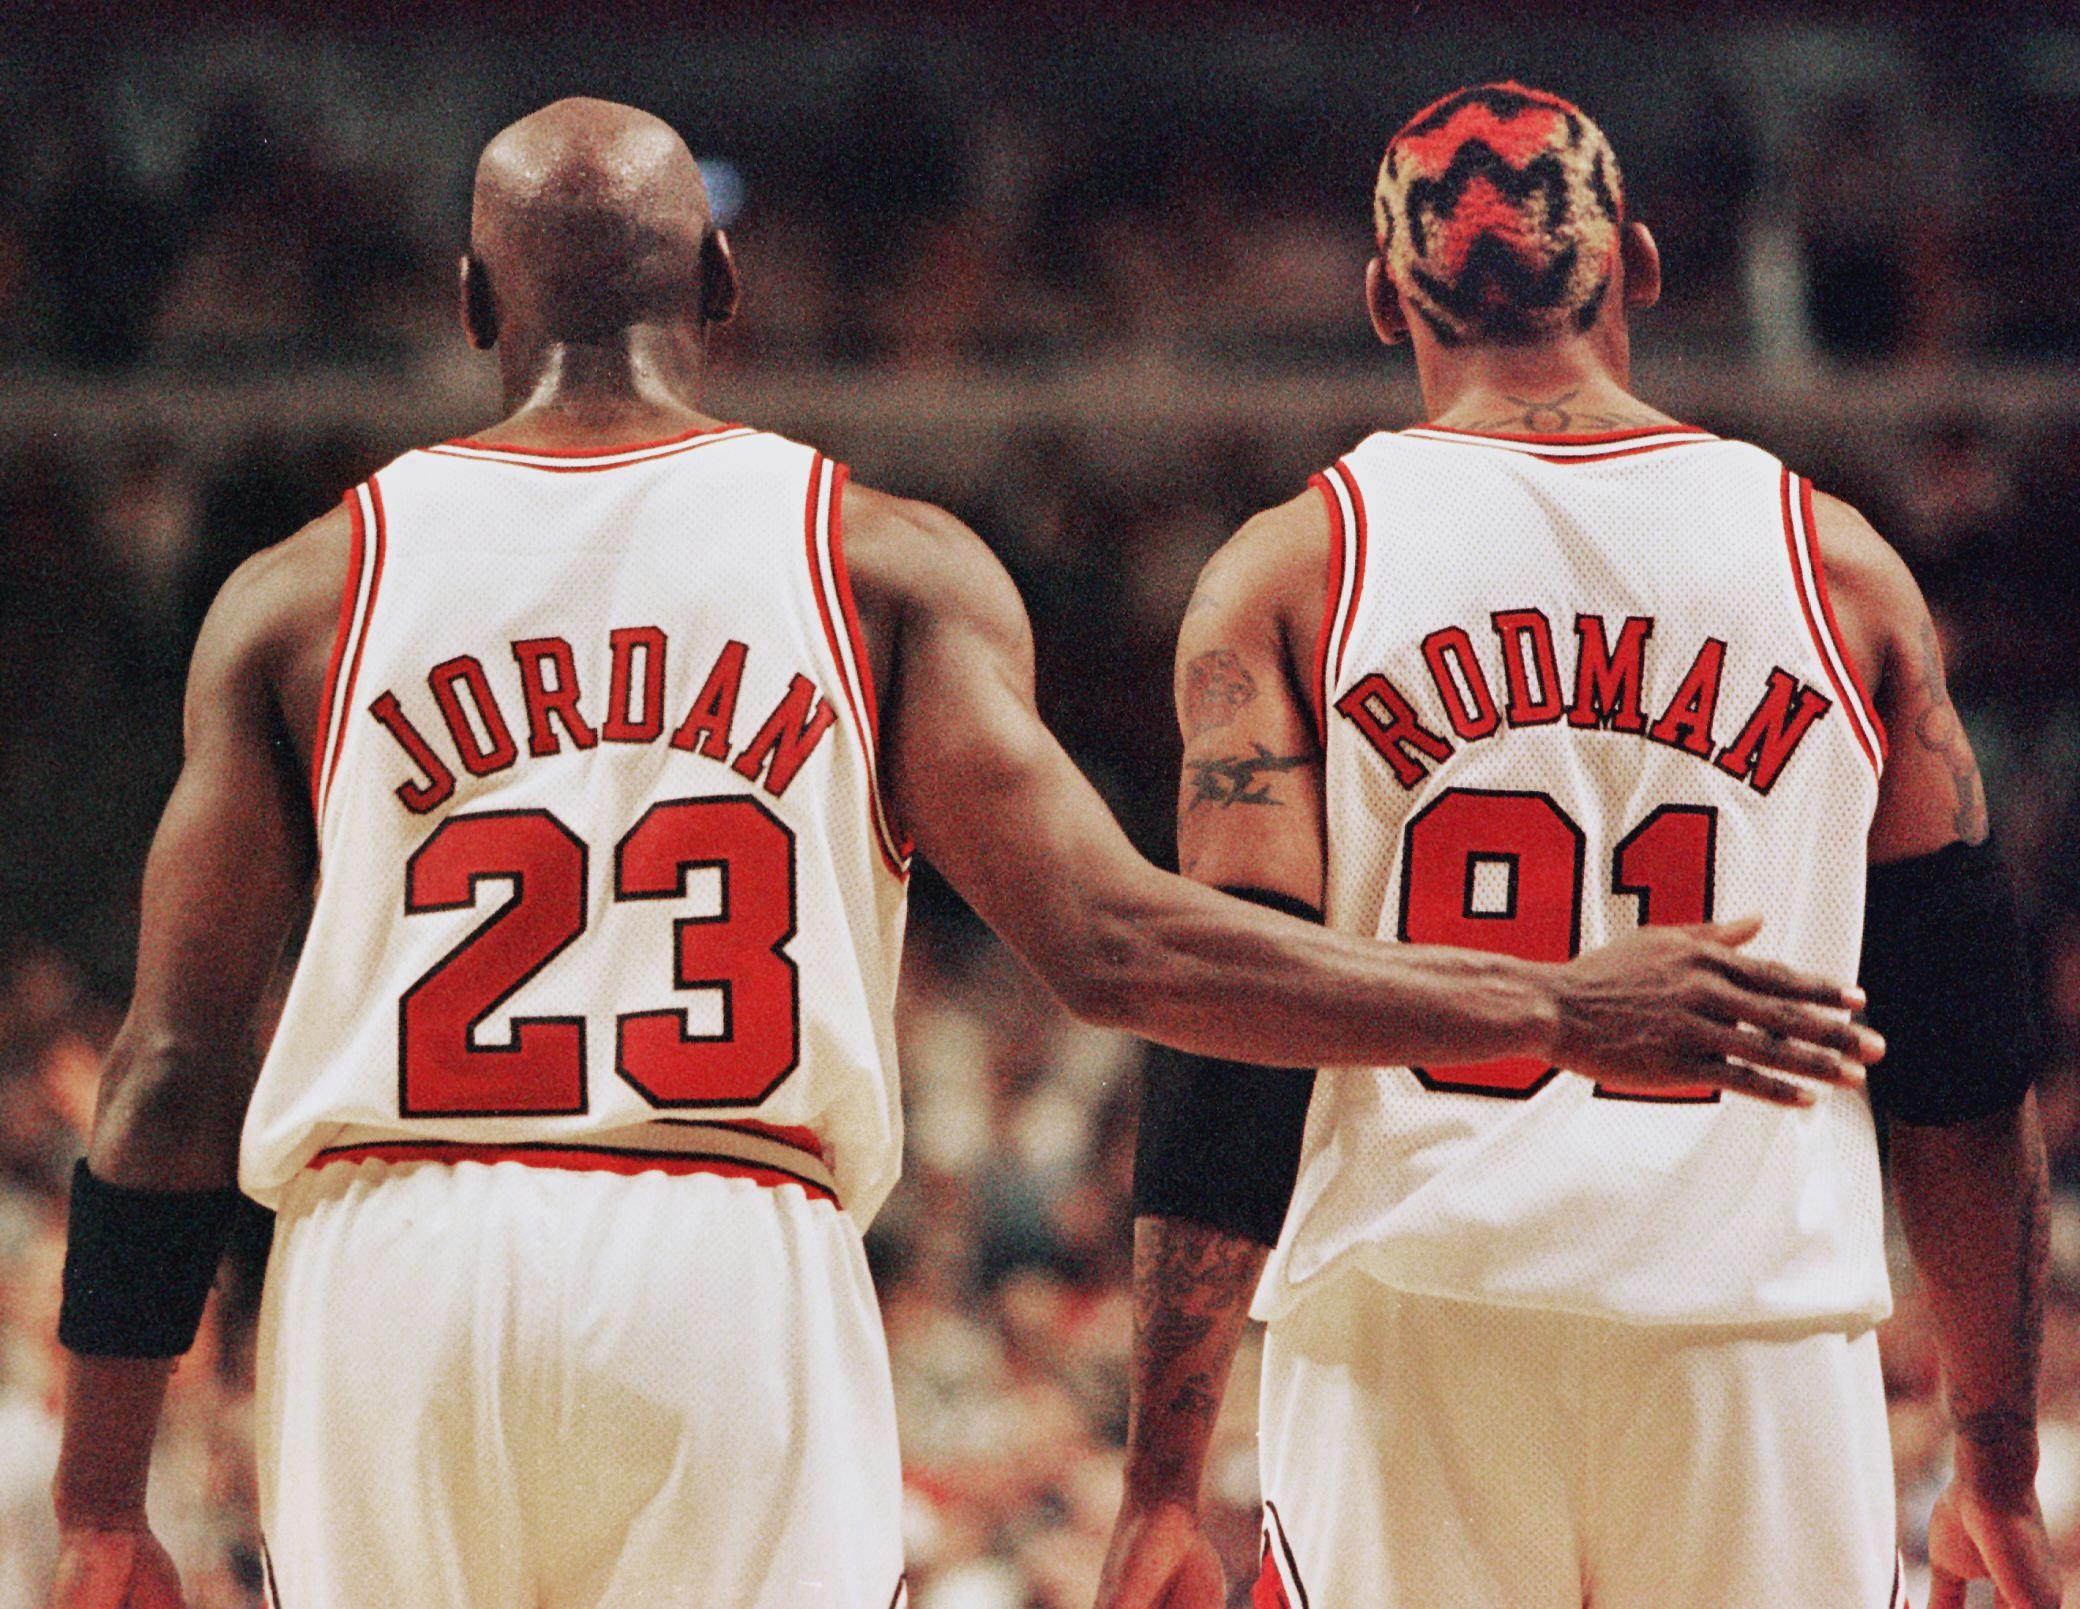 Michael Jordan putting his arm around Dennis Rodman